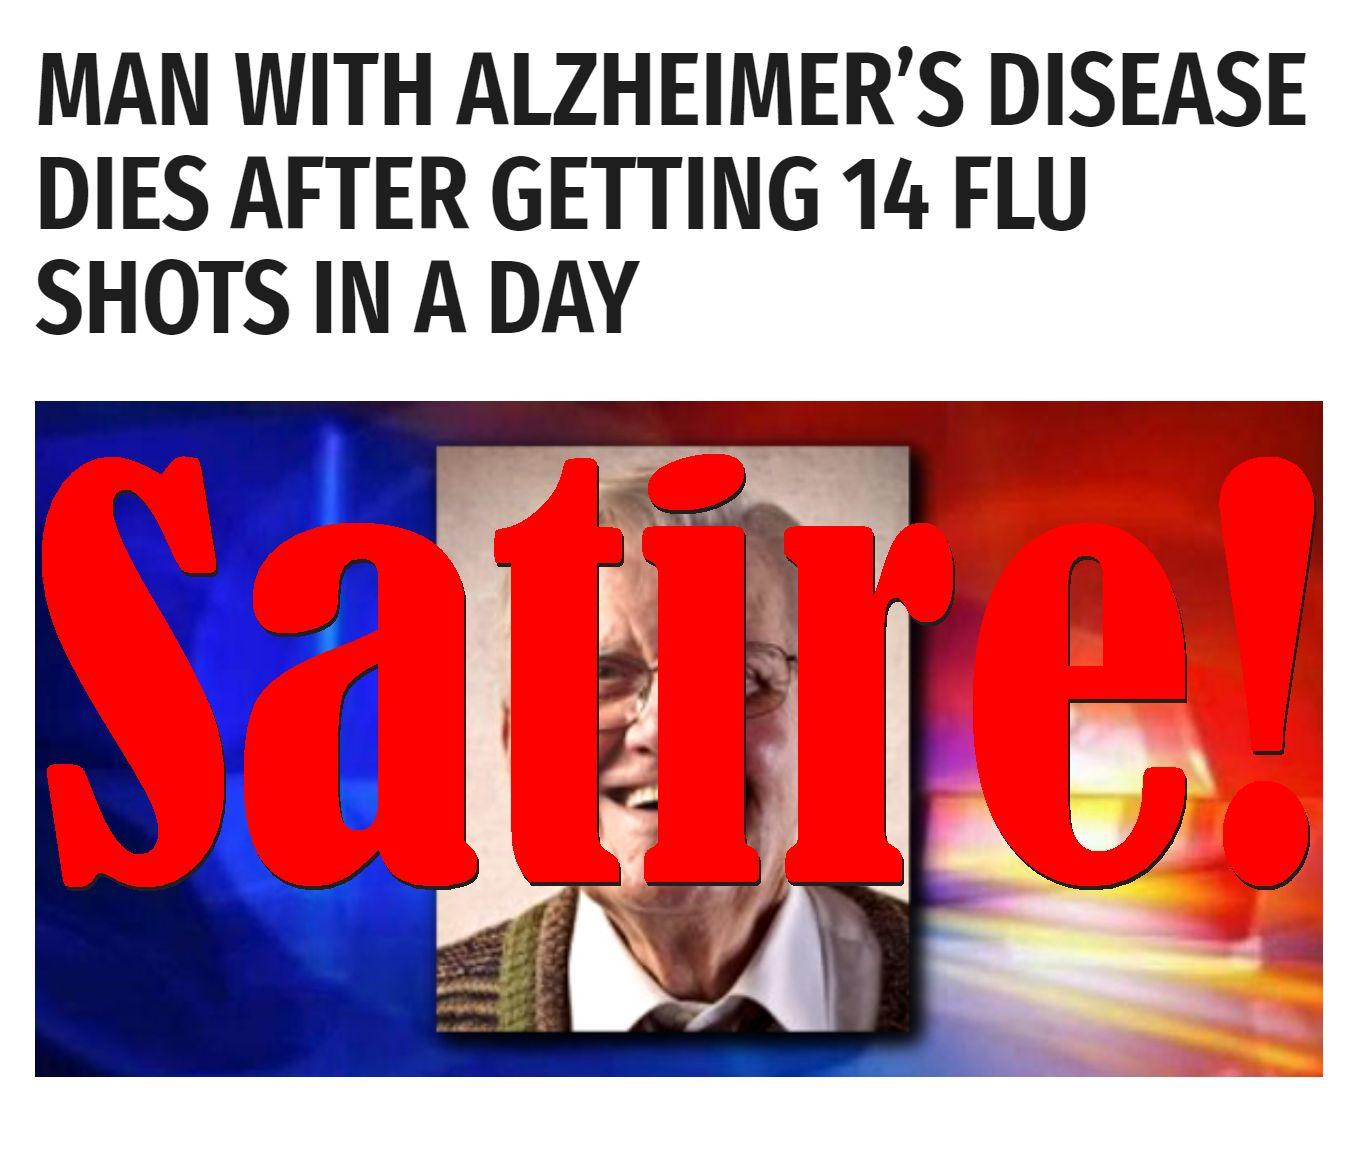 Fake News: Man With Alzheimer's Disease Did NOT Get 14 Flu Shots In A Day, Did NOT Die